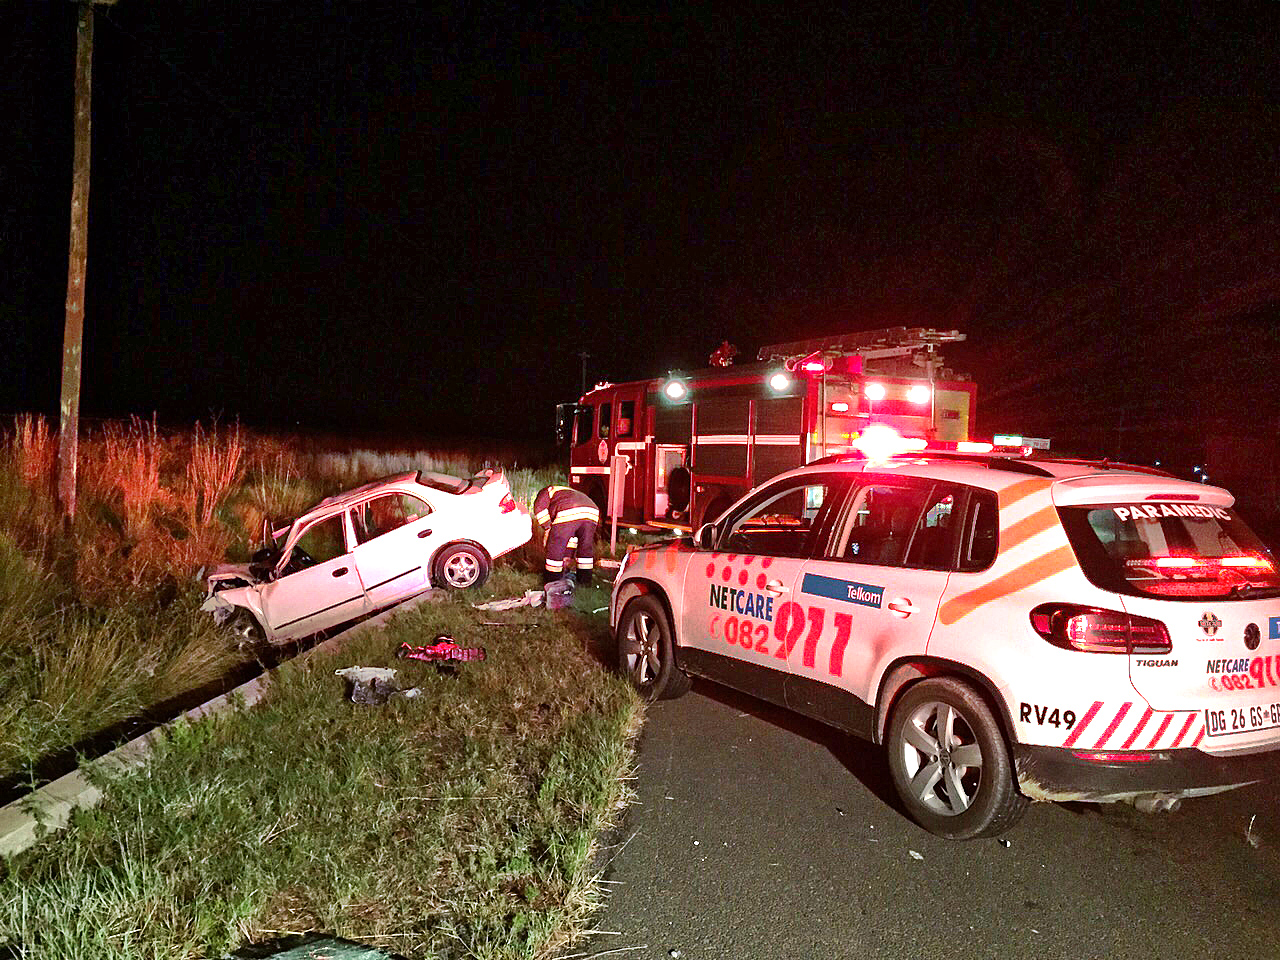 Bloemfontein N8 road crash leaves four injured